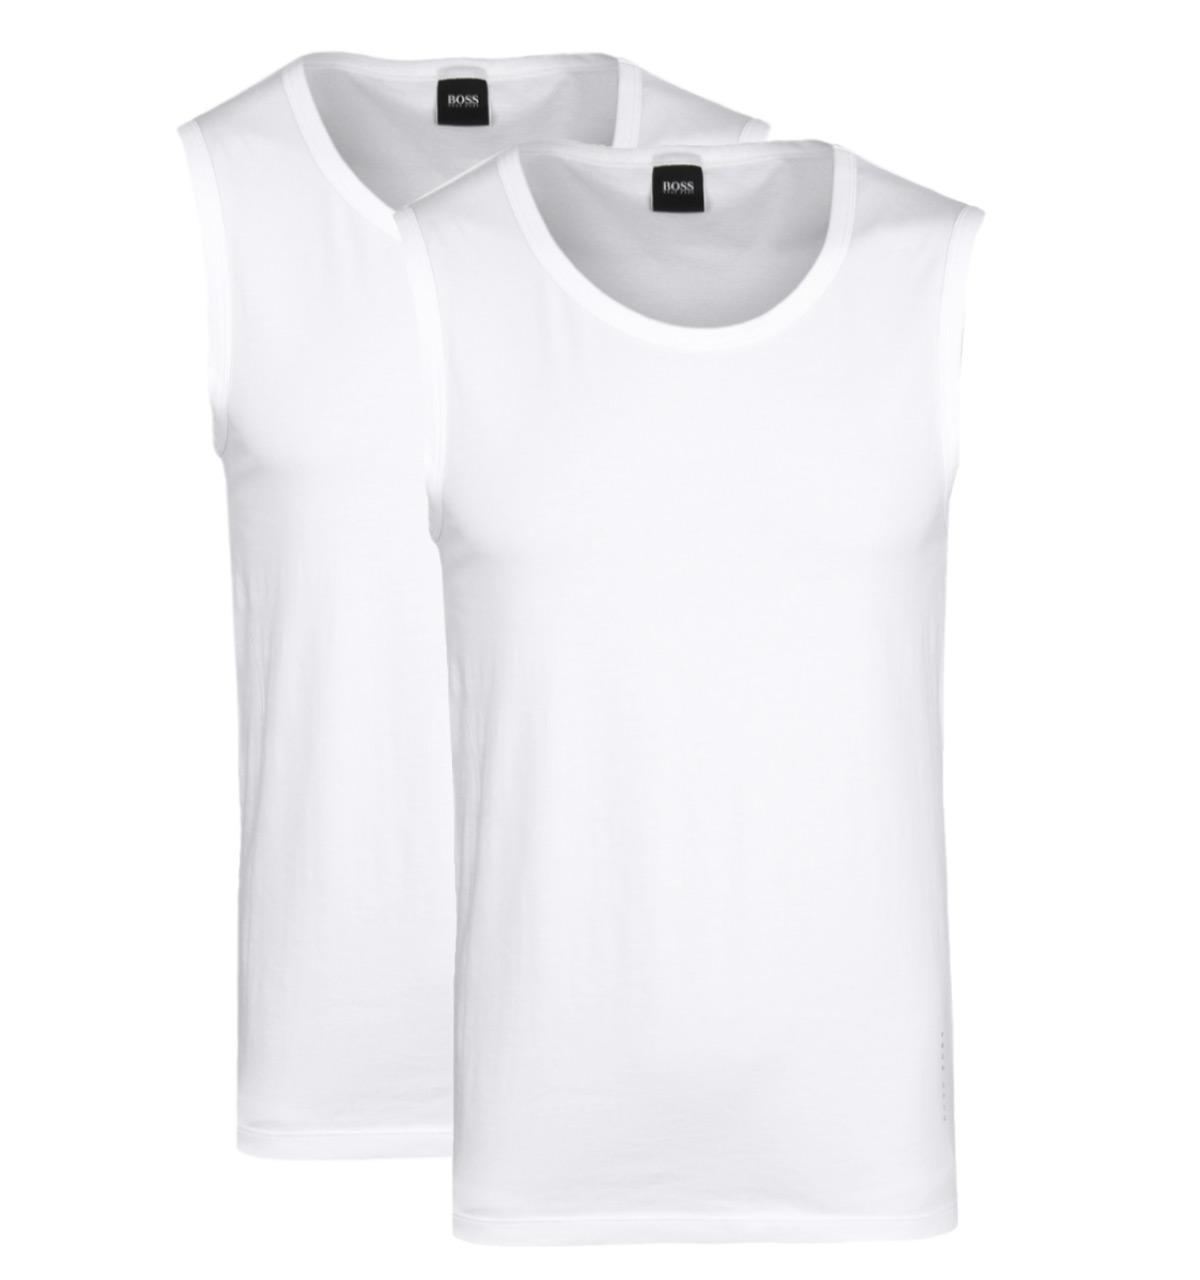 822ad78261df9 Lyst - BOSS 2 Pack White Jersey Slim Fit Tank Top Vests in White for Men